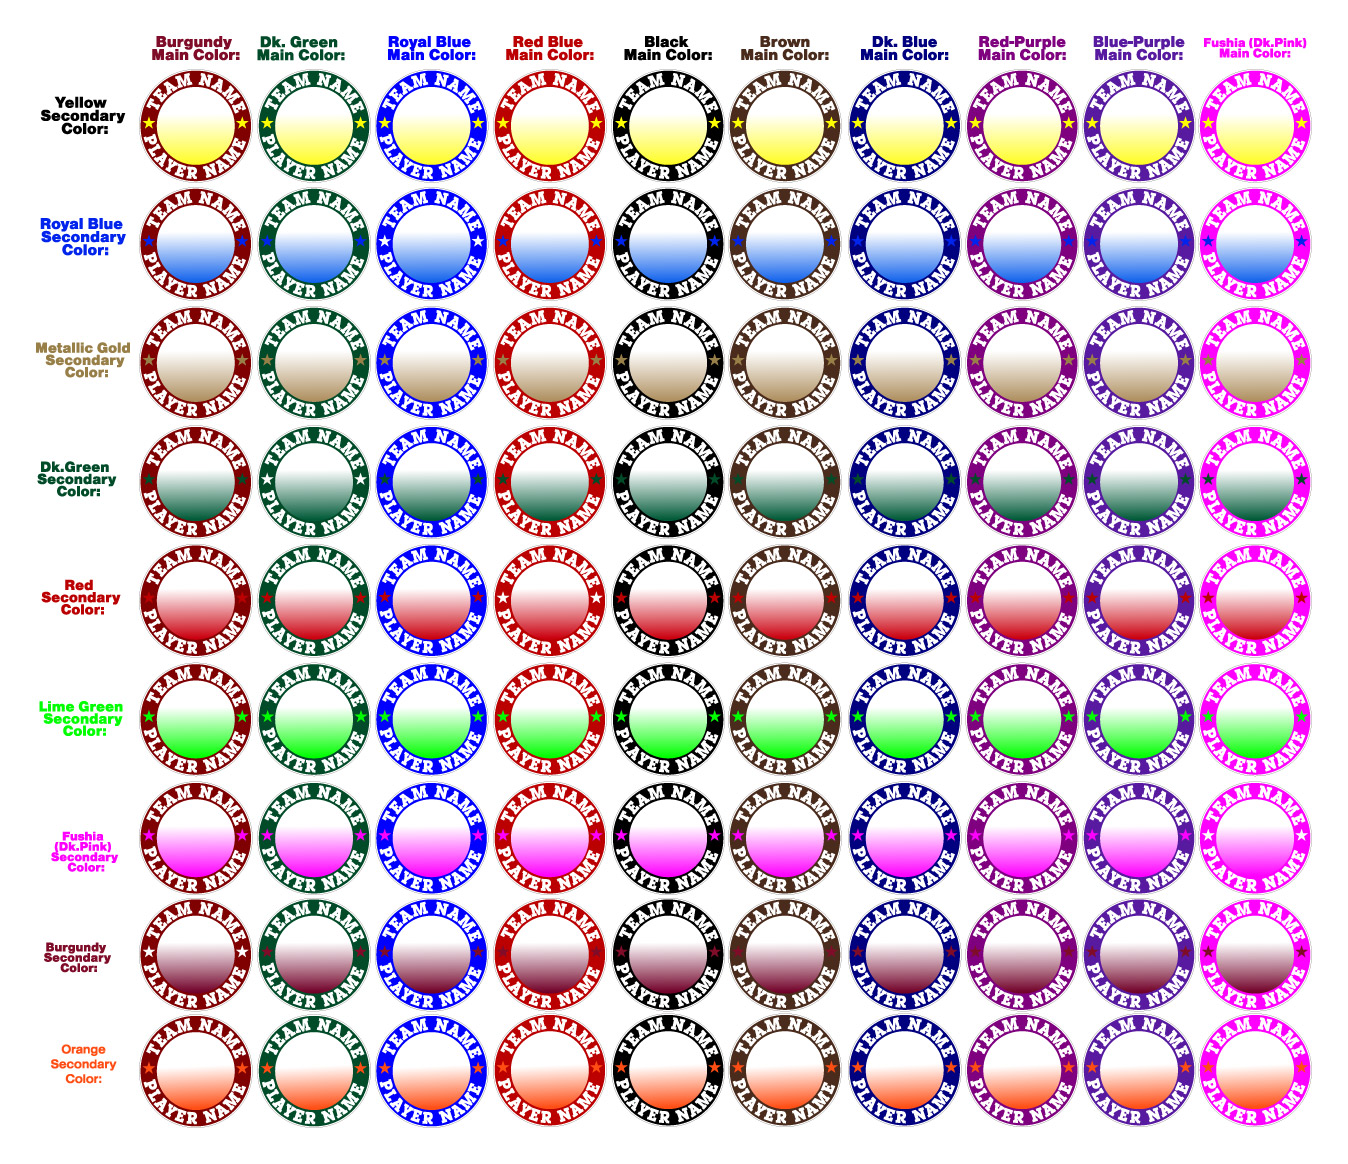 color examples (of many color combinations)